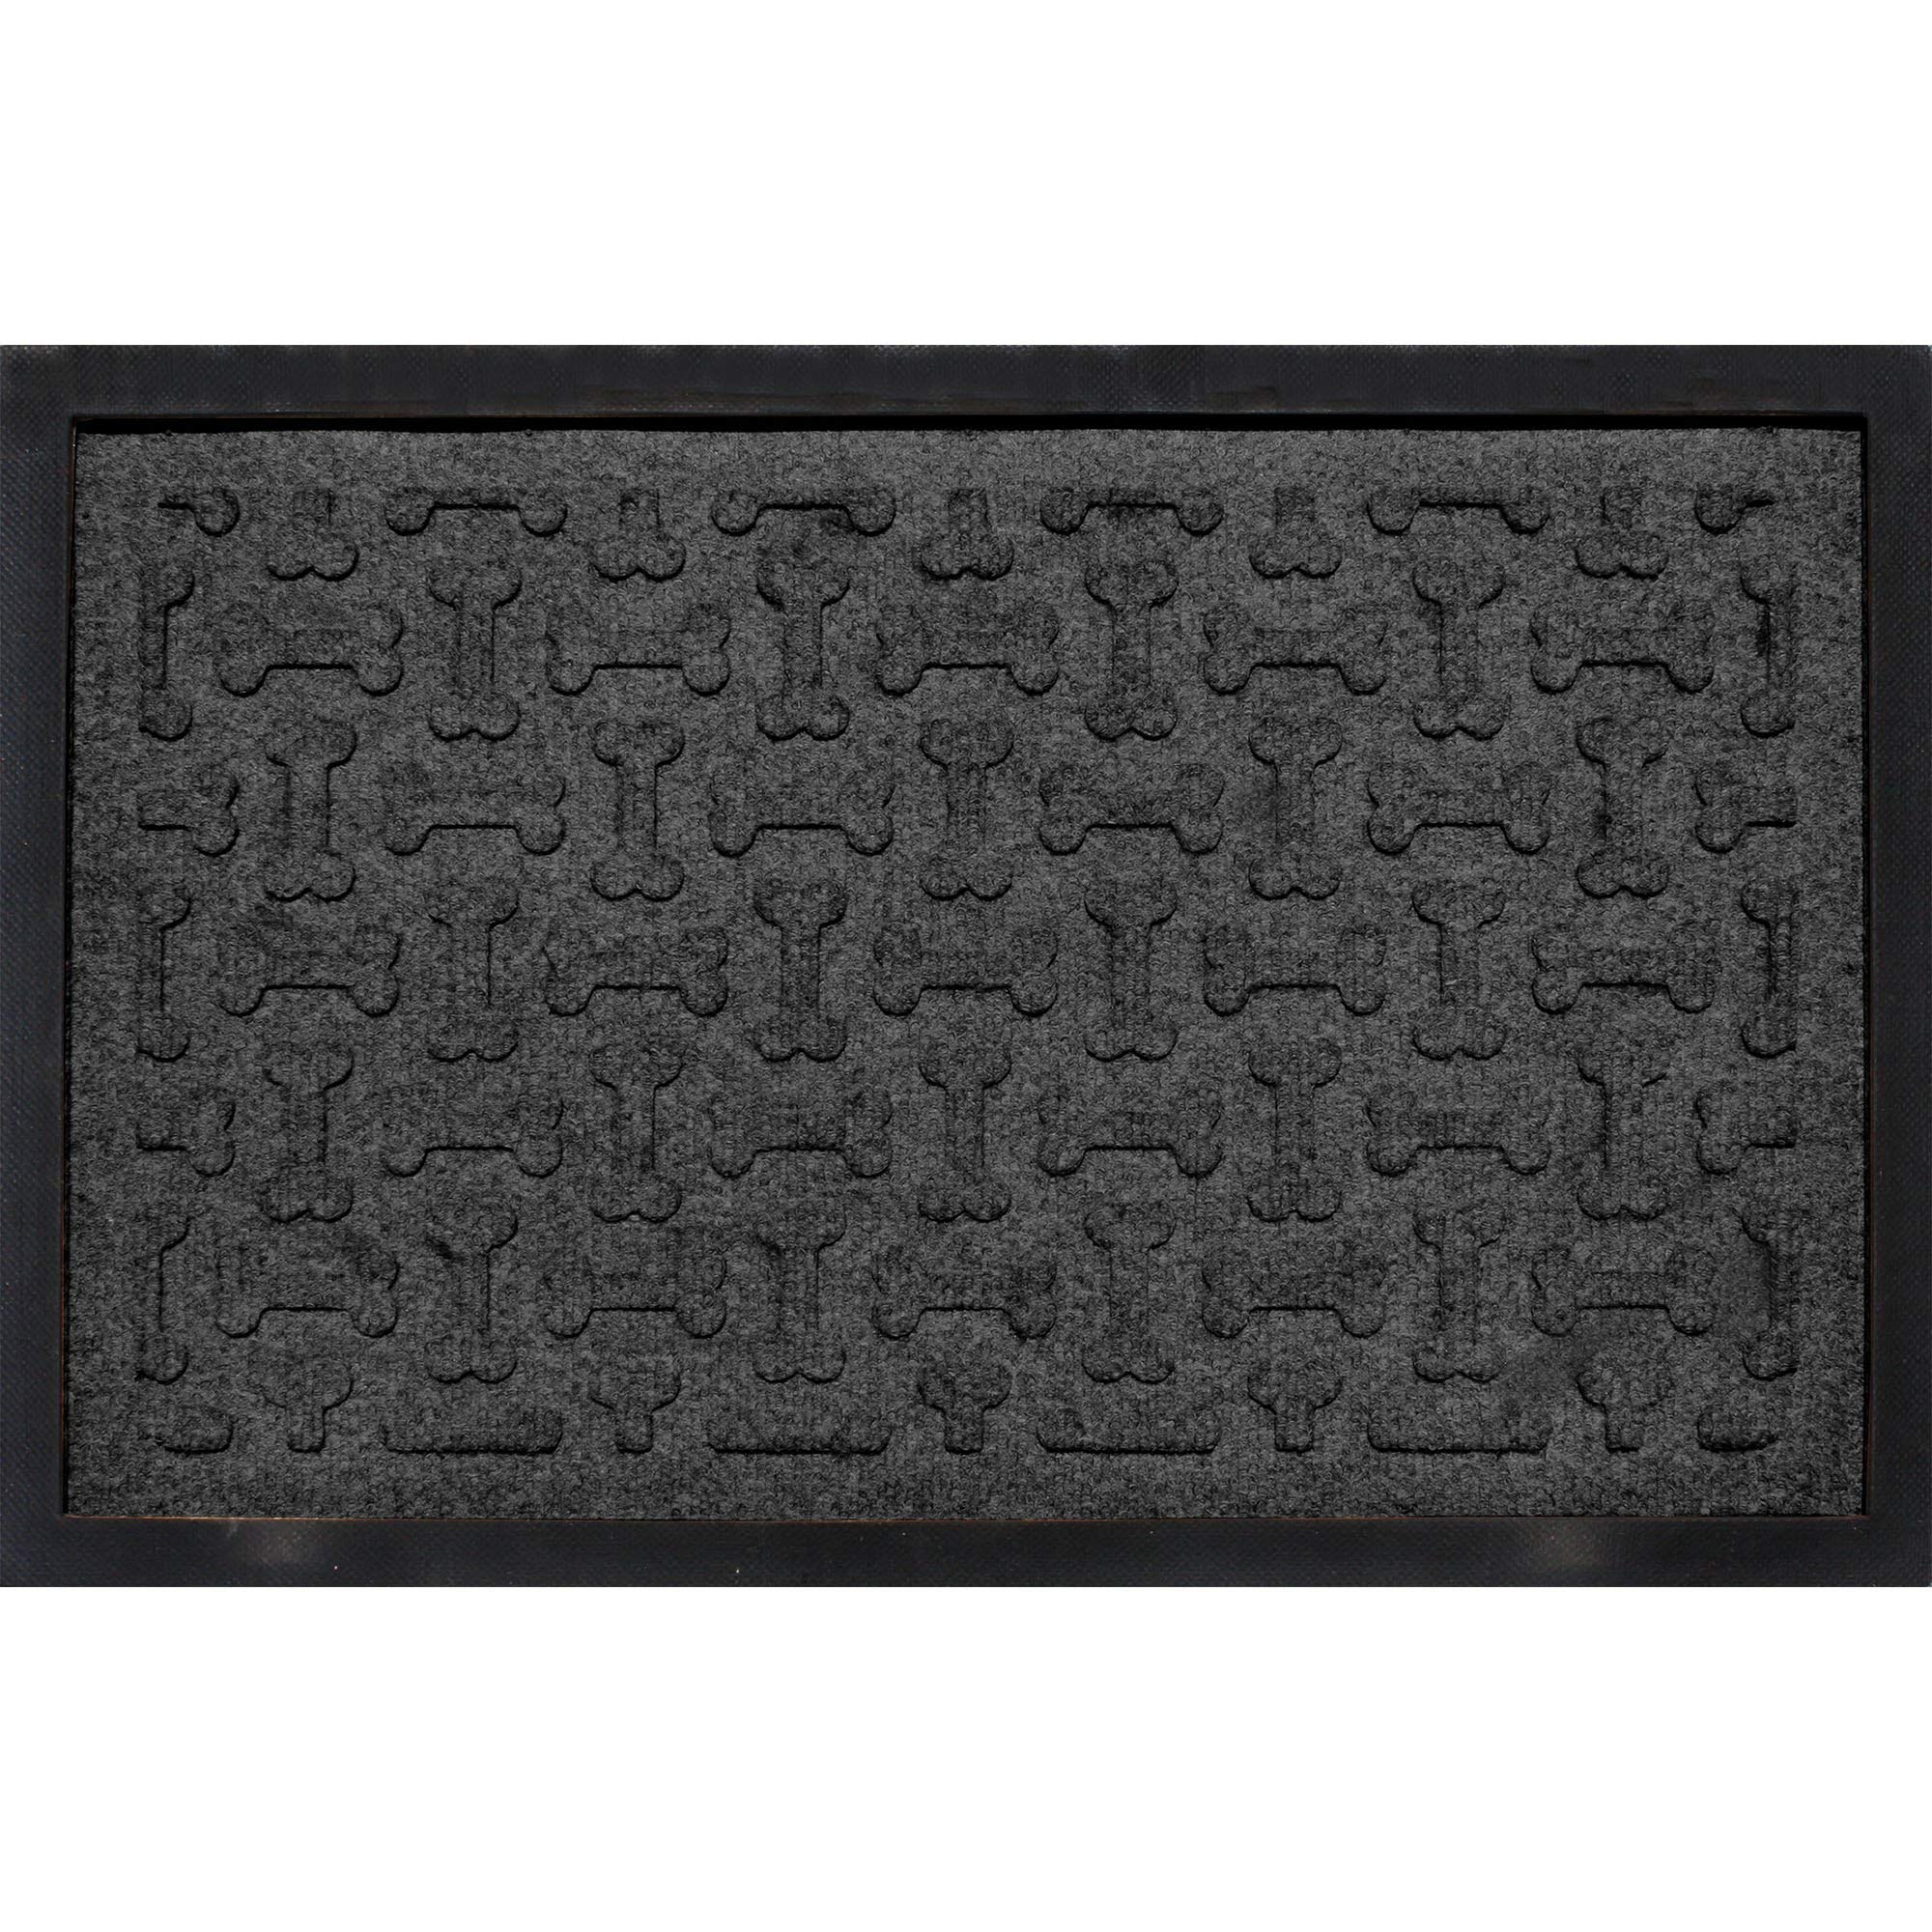 Bungalow Flooring Bone Treats Feeding Tray Charcoal Dog Mat, 27'' L x 18'' W, Small, Gray